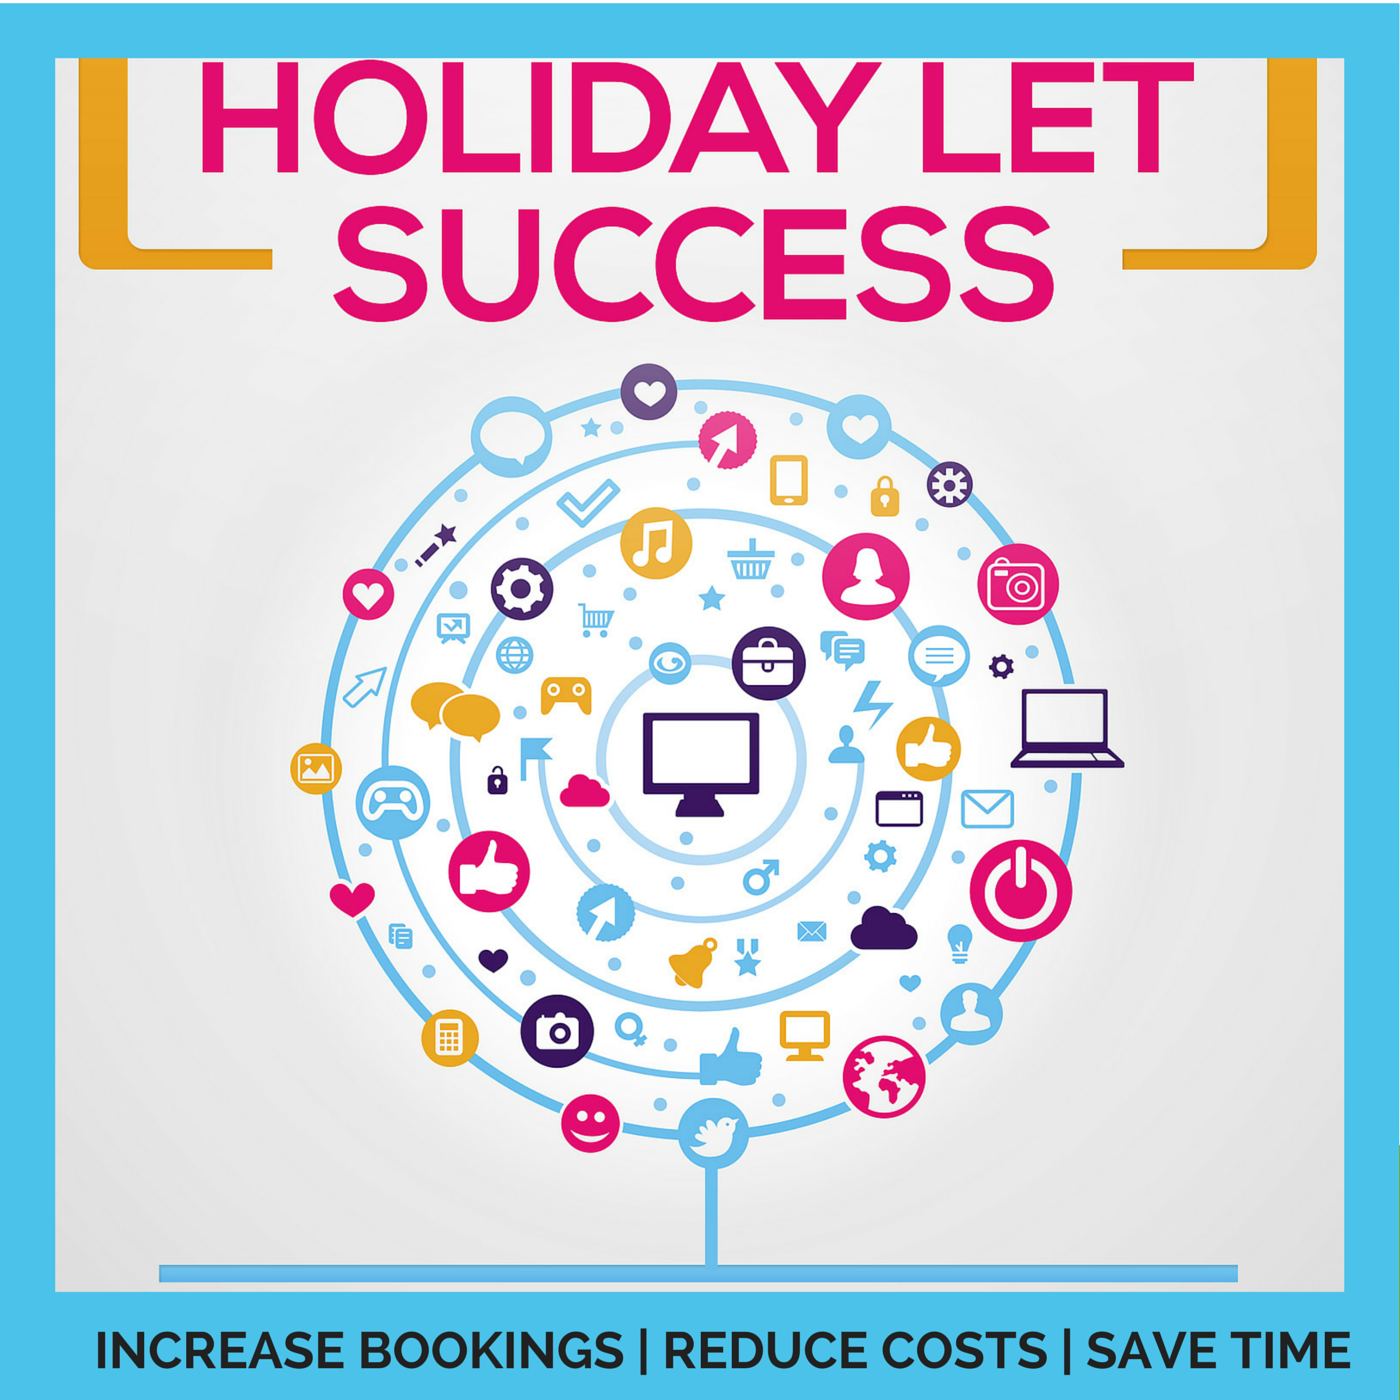 Holiday Let Success | Vacation Rental | Marketing | Elaine Watt | Property Investing | Serviced Accommodation | Holiday Rental | Increase Bookings | Reduce Costs | Save Time | Property Management  logo